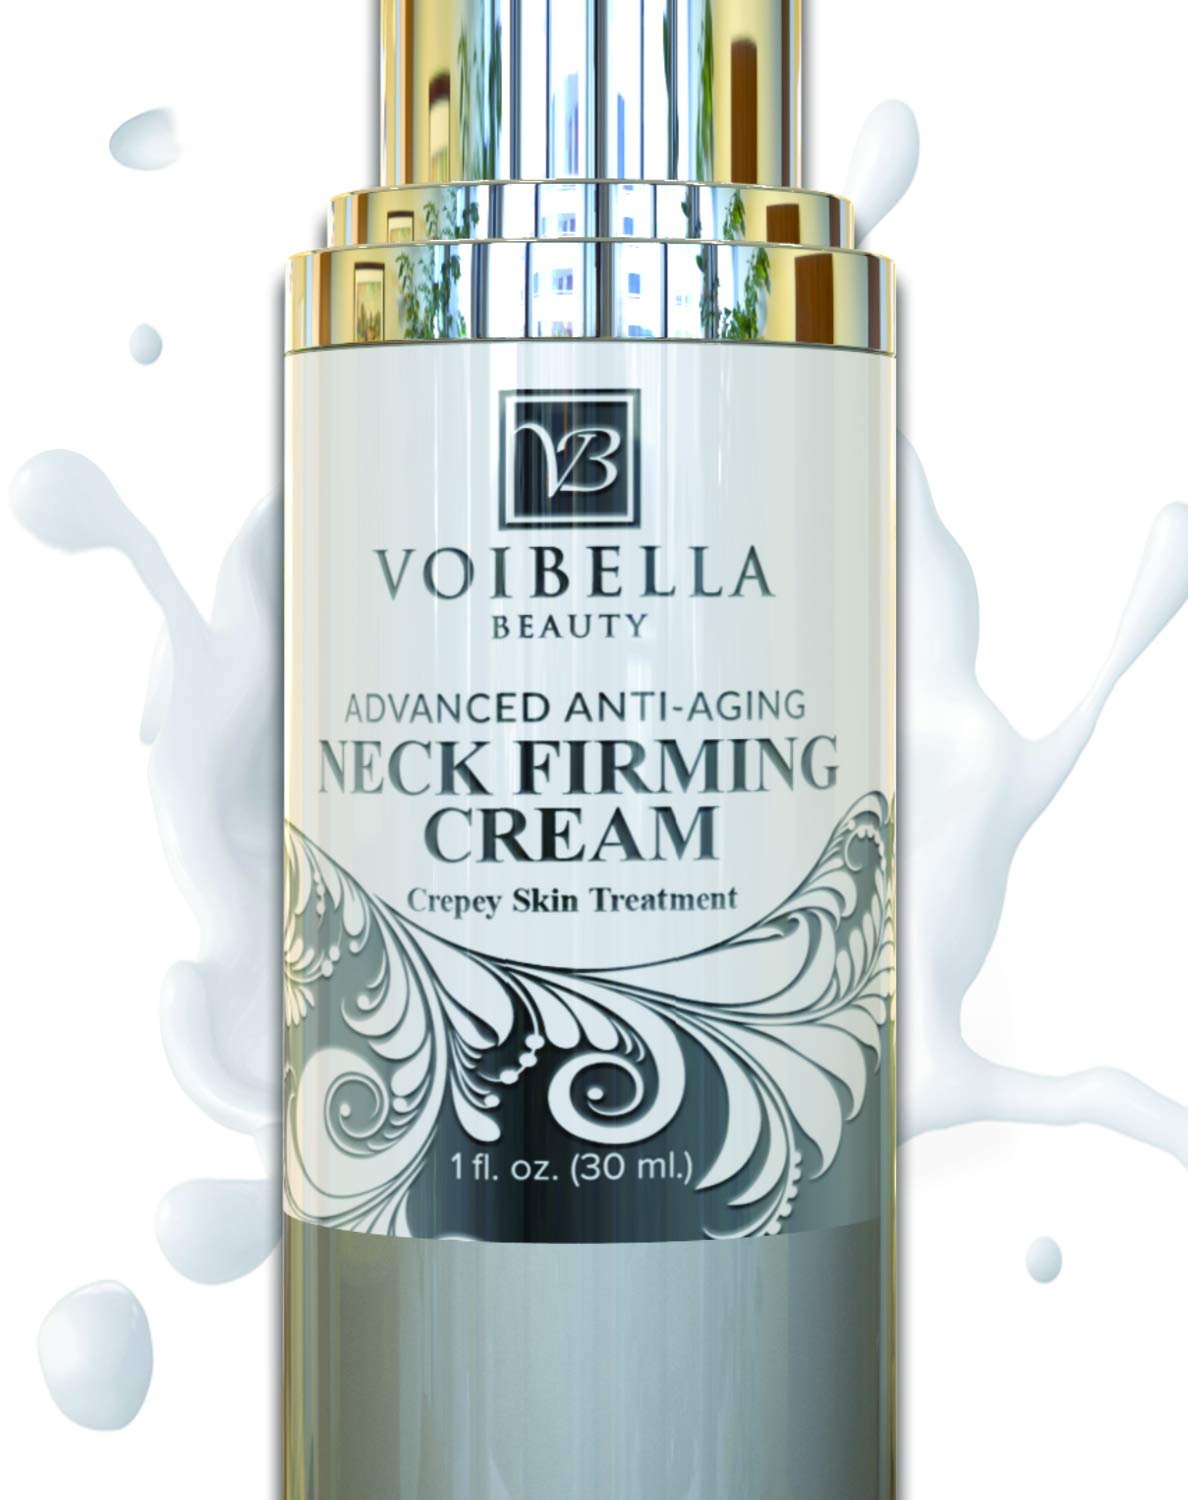 Best Neck & Chest Firming Cream for Sagging, Crepey Skin & Wrinkles. Anti-Aging Crepe Eraser, Turkey Neck Tightener & Decolletage Lotion. Works for Tightening Decollete, Double Chin, Arms, Body & Face by Voibella Beauty